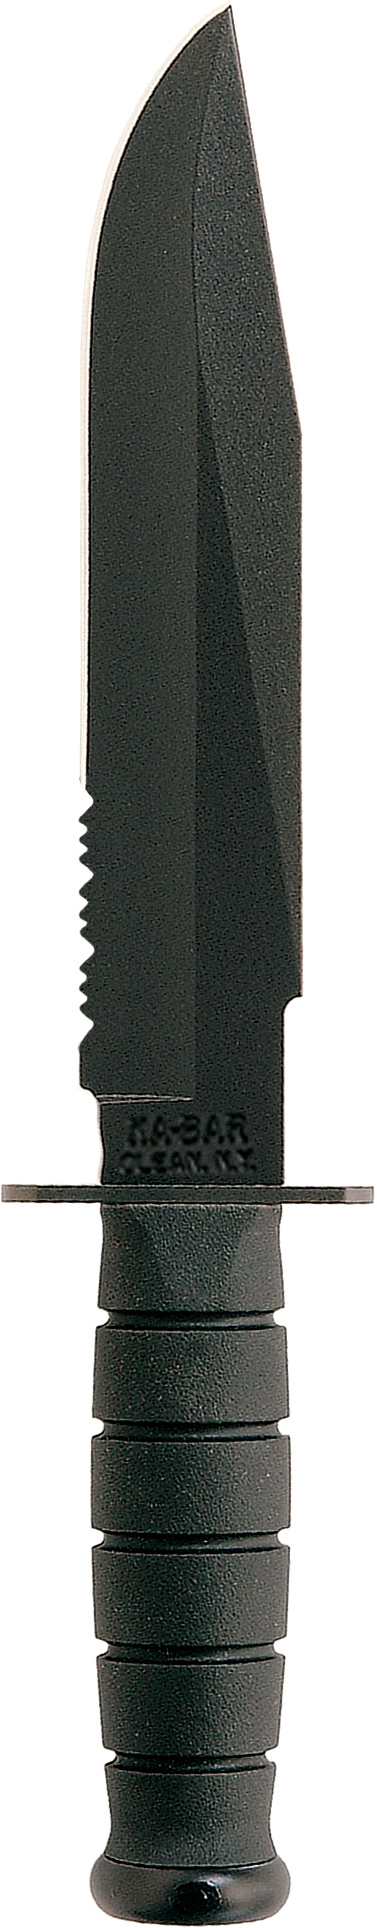 1271 - KA-BAR FIGHTER BLACK, BLACK LEATHER/CORDURA SHEATH, SERRATED EDGE